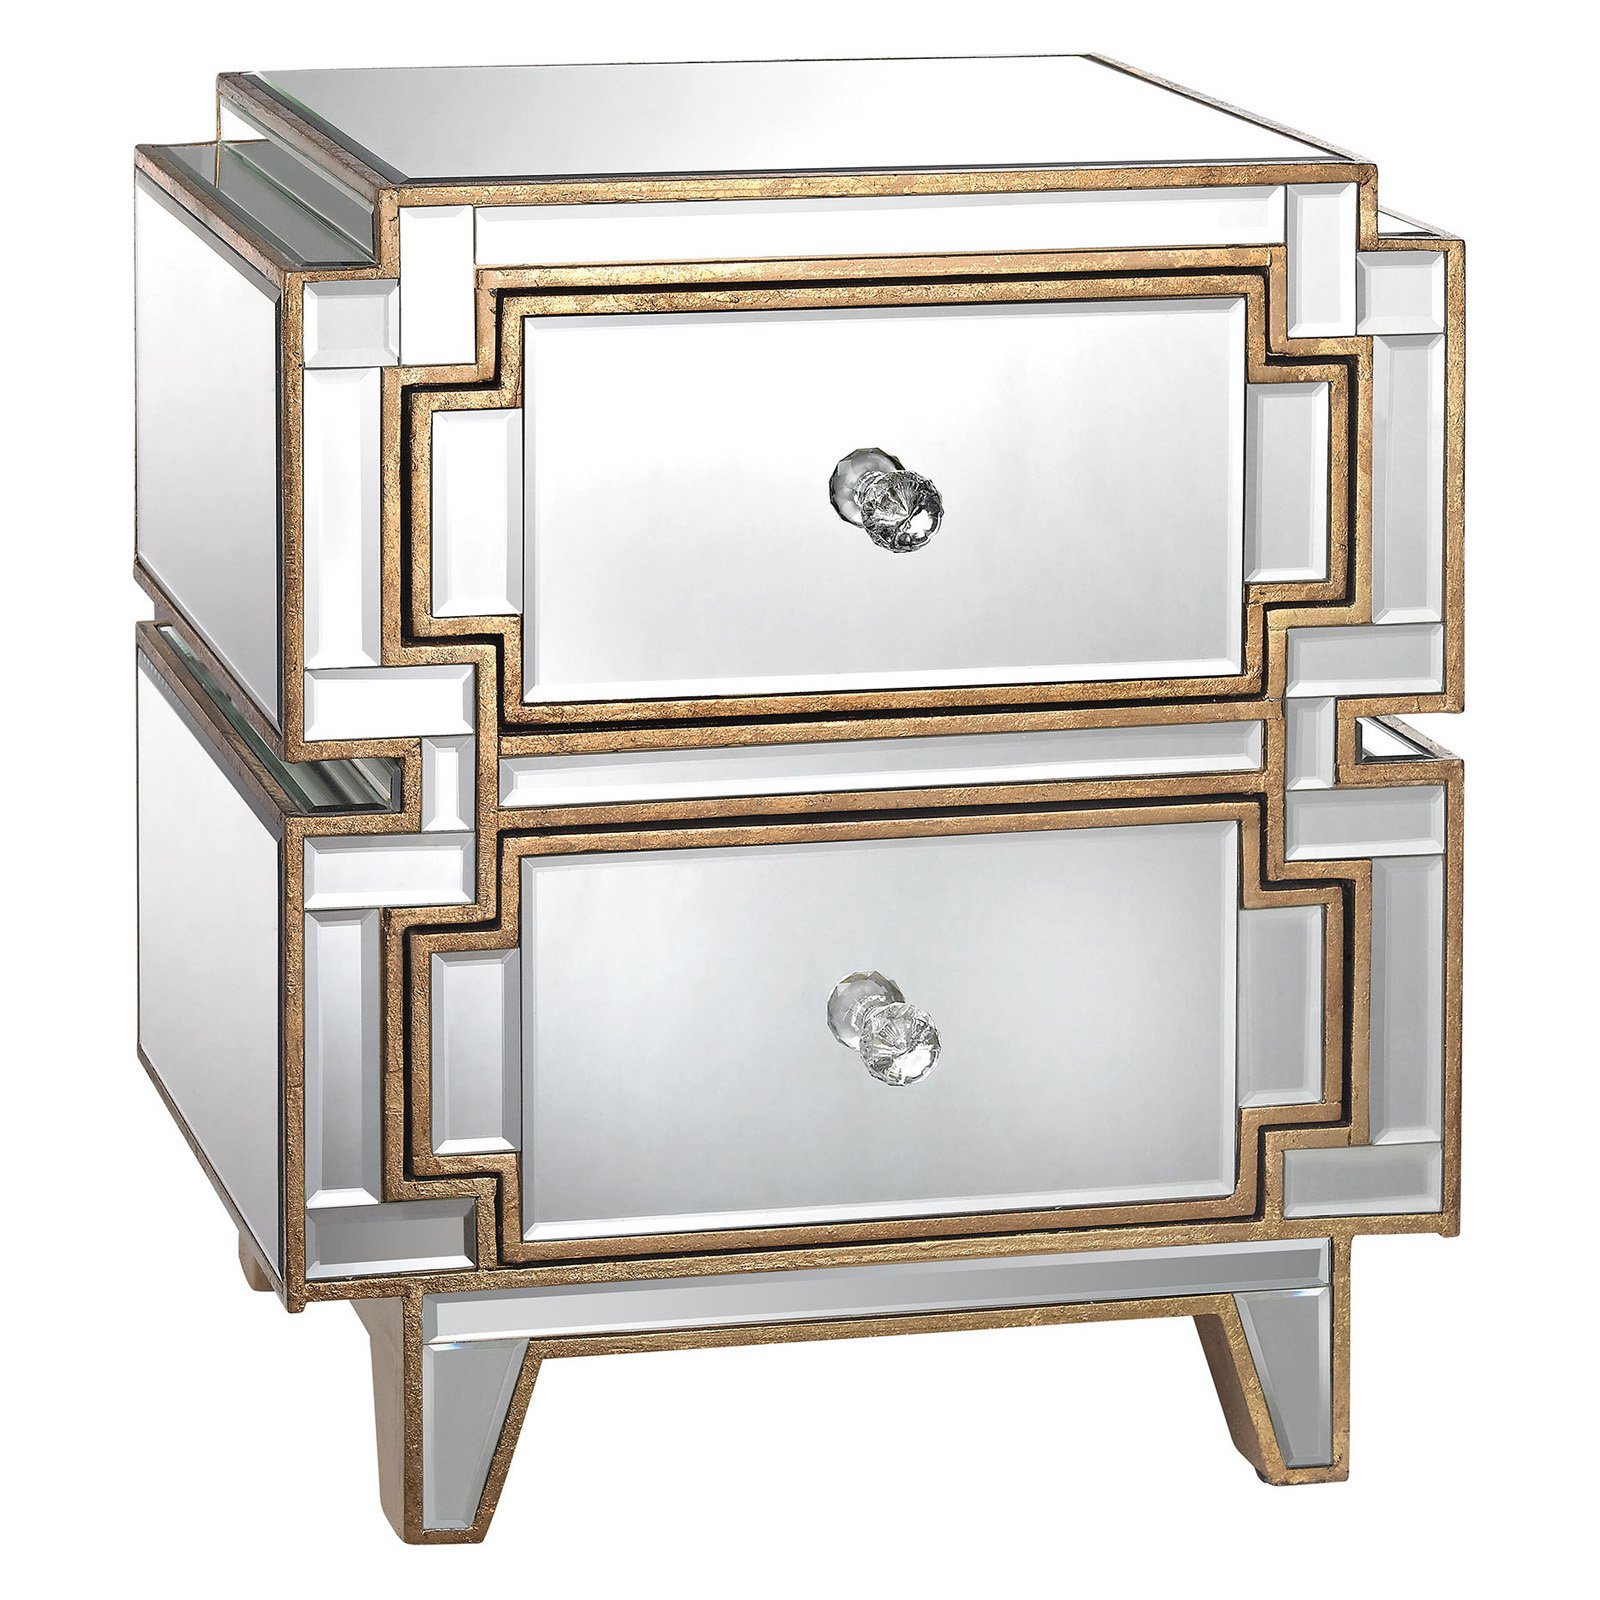 Dimond Home Hollywood 2 Drawer Decorative Chest by Dimond Home